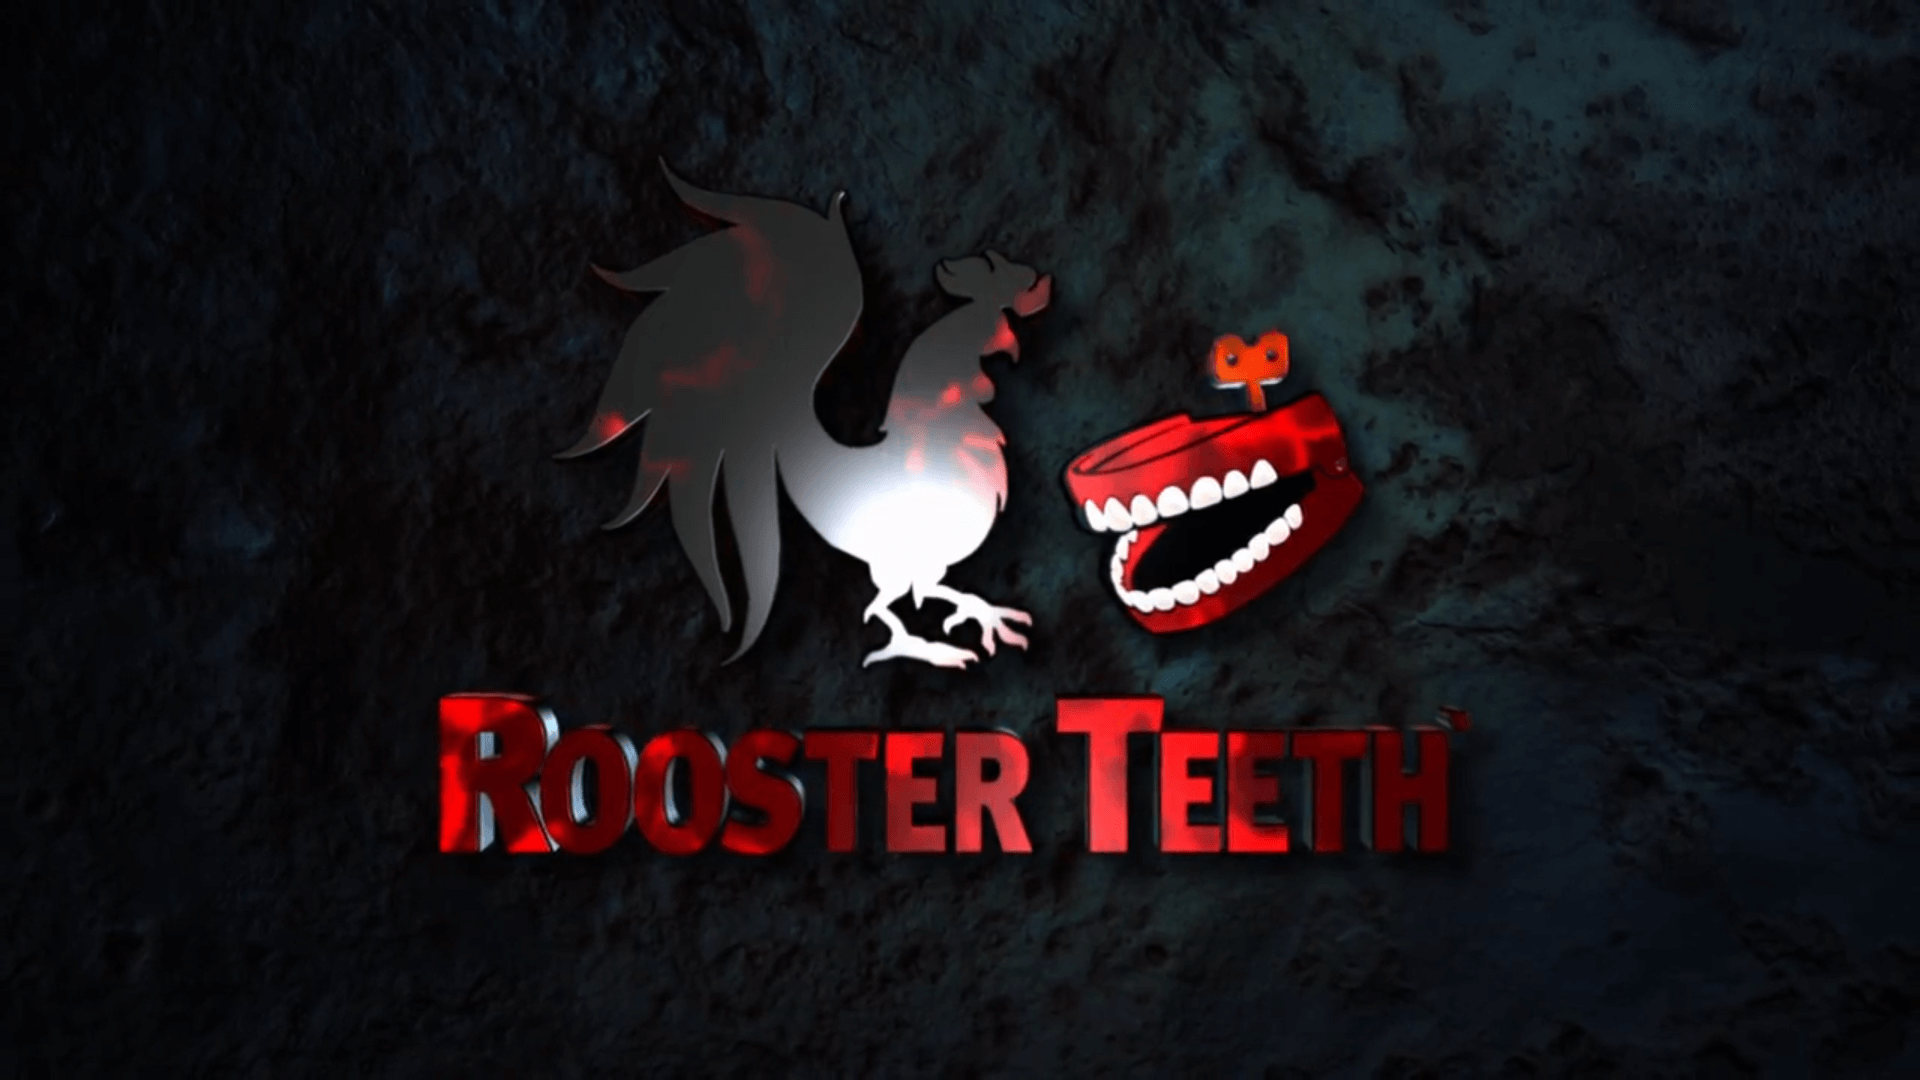 Rooster Teeth Games Opens Their Doors To Indie Developers